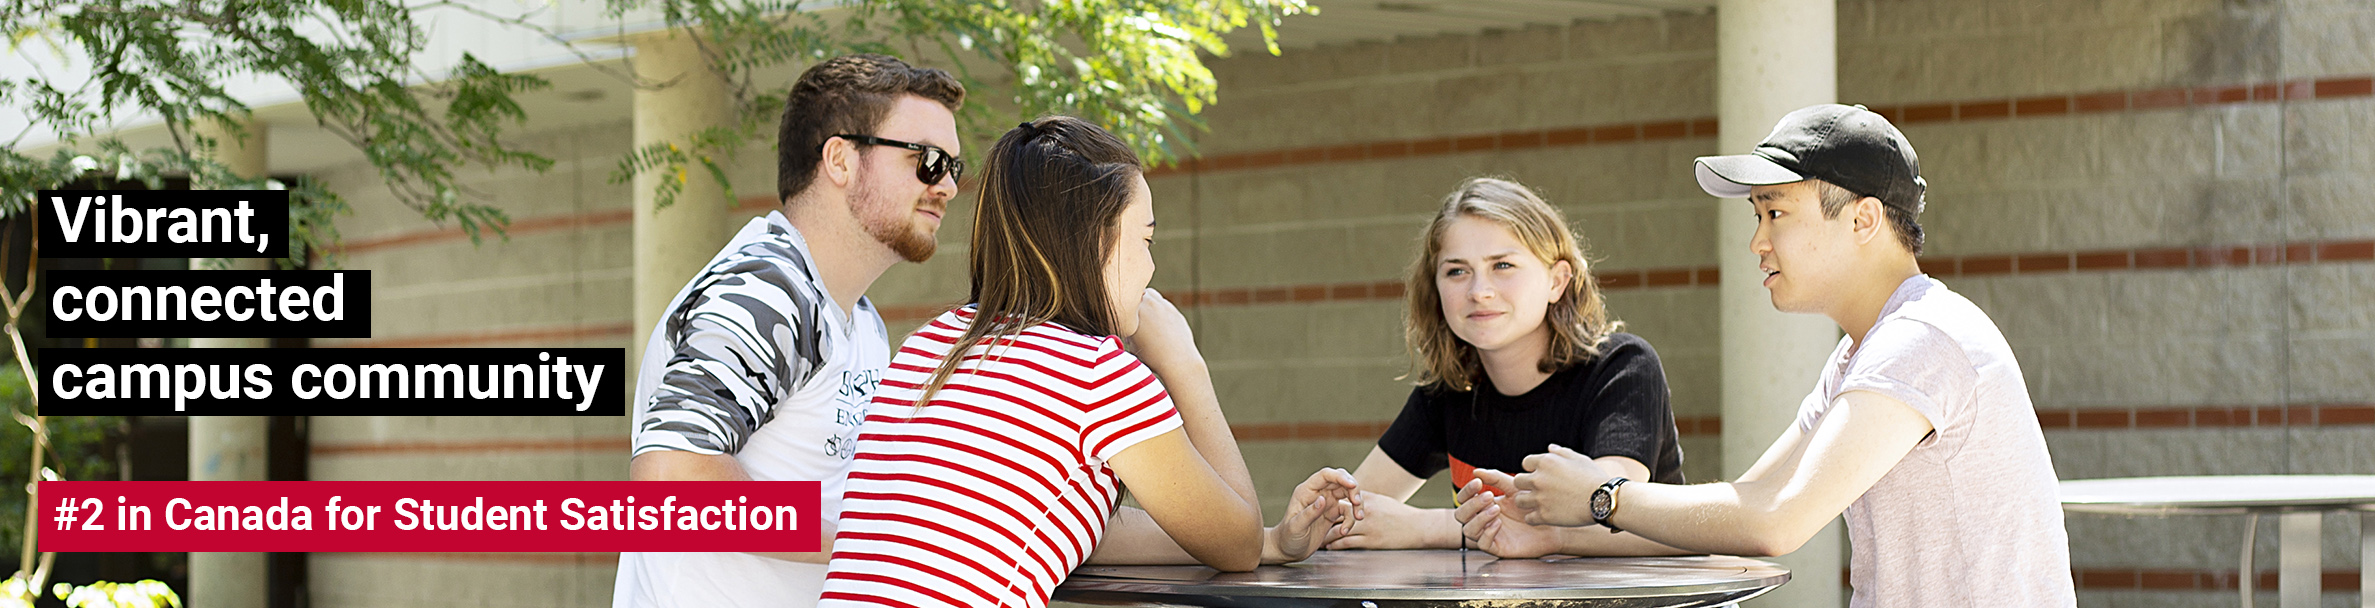 Image of students sitting at table chatting